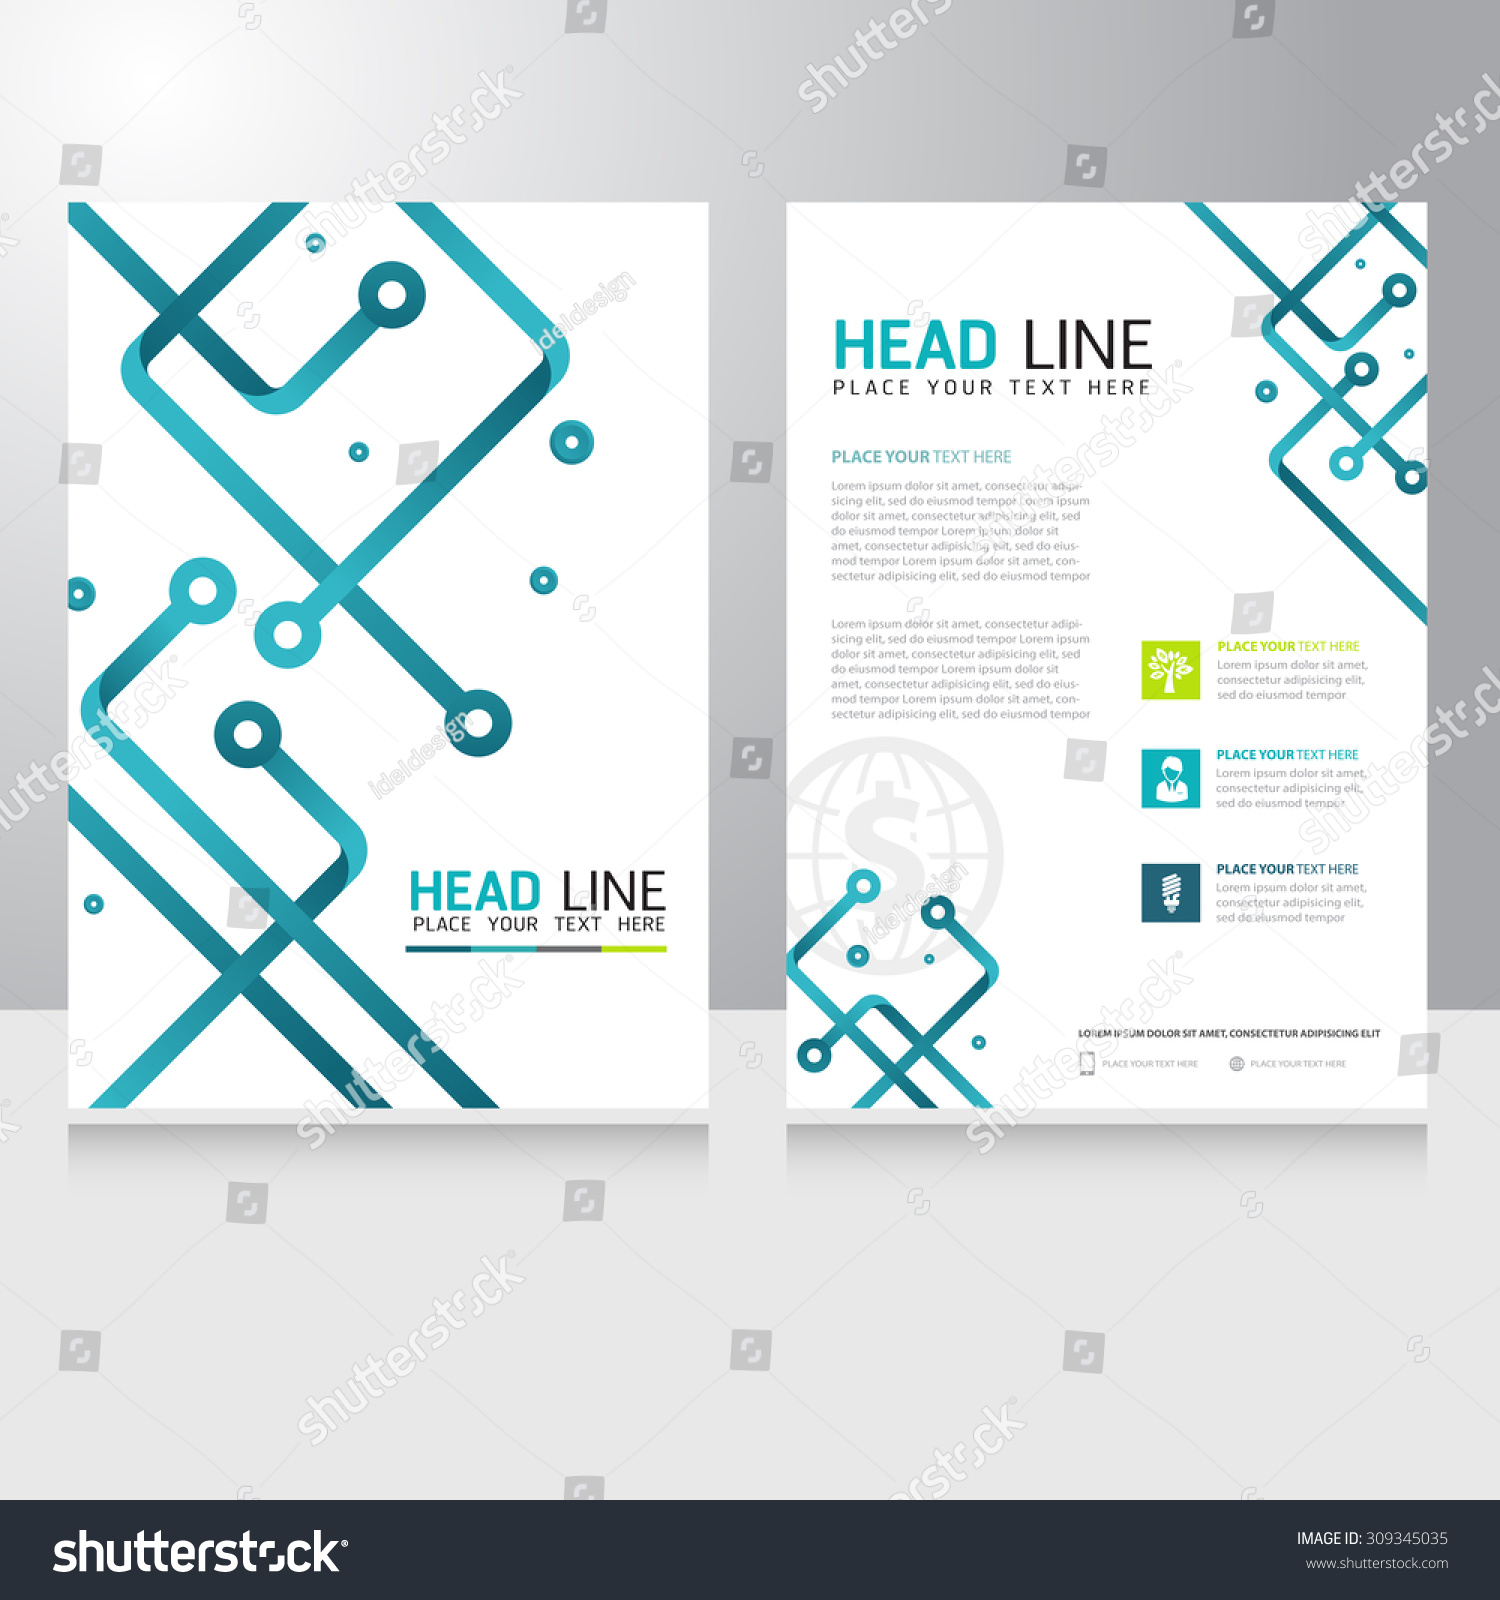 Abstract Technology Brochure Template Modern Digital Stock Vector ...